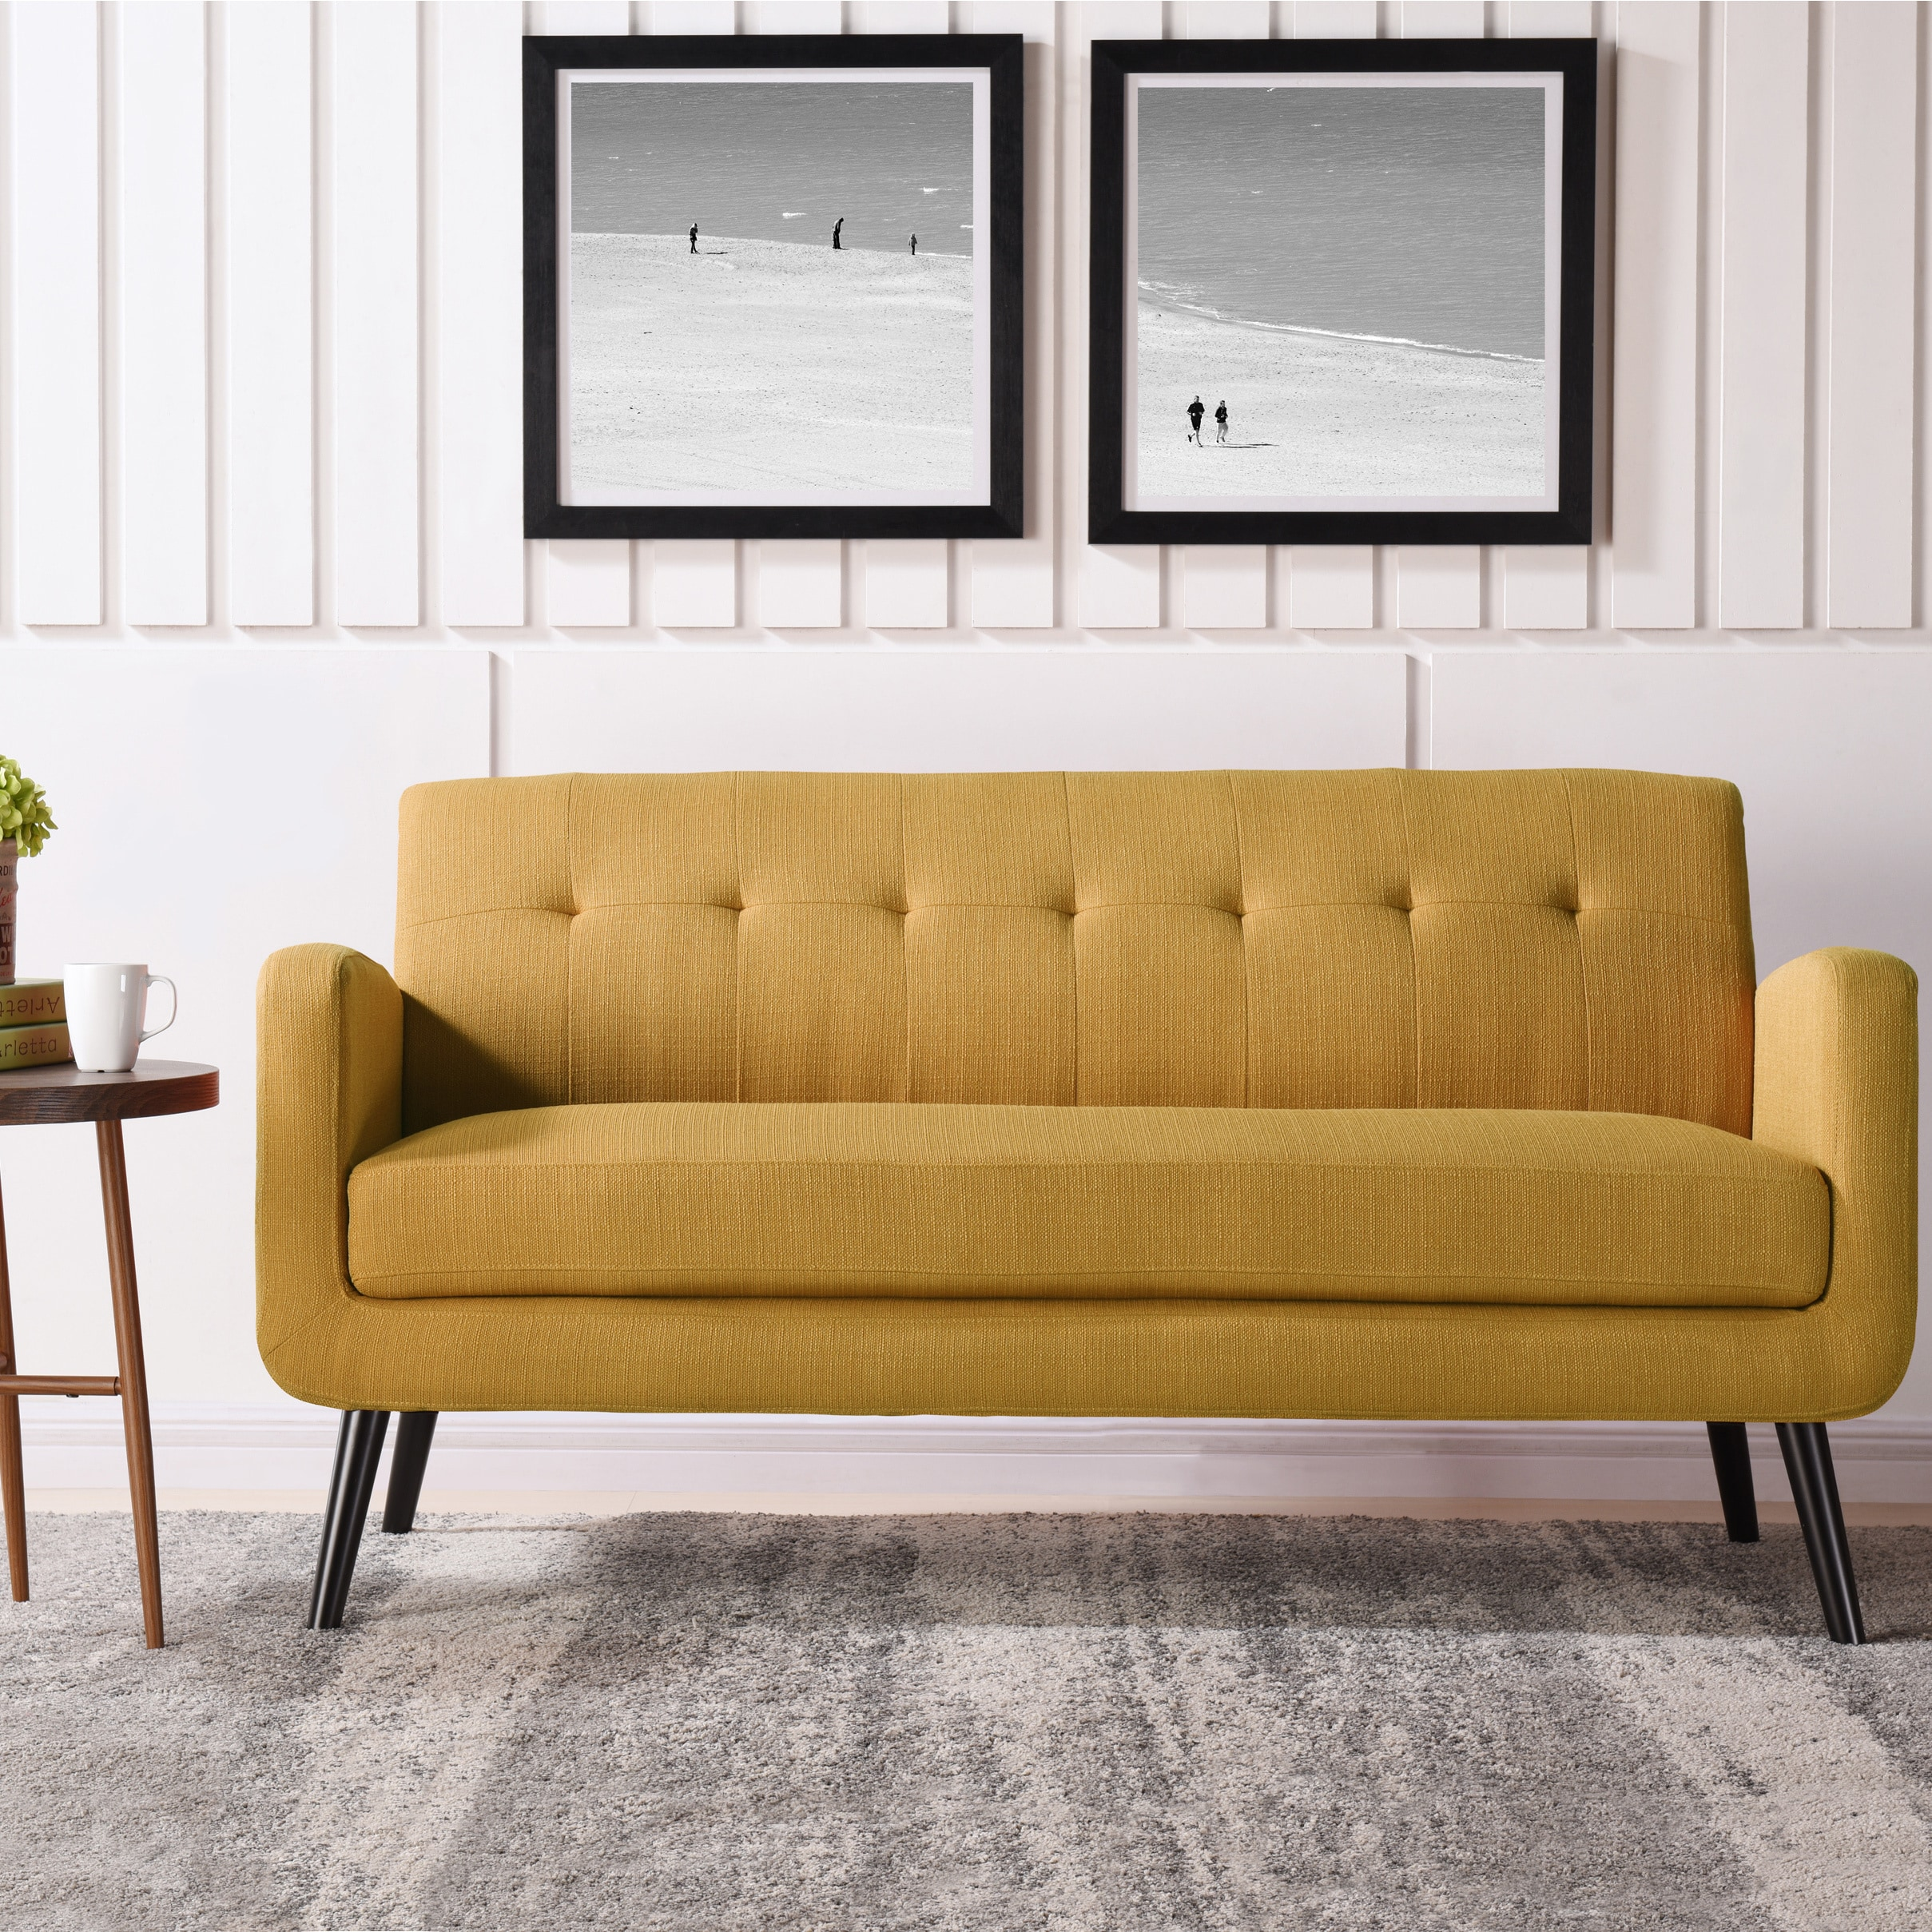 Tremendous Carson Carrington Tjaereborg Mustard Yellow Mid Century Modern Sofa Caraccident5 Cool Chair Designs And Ideas Caraccident5Info